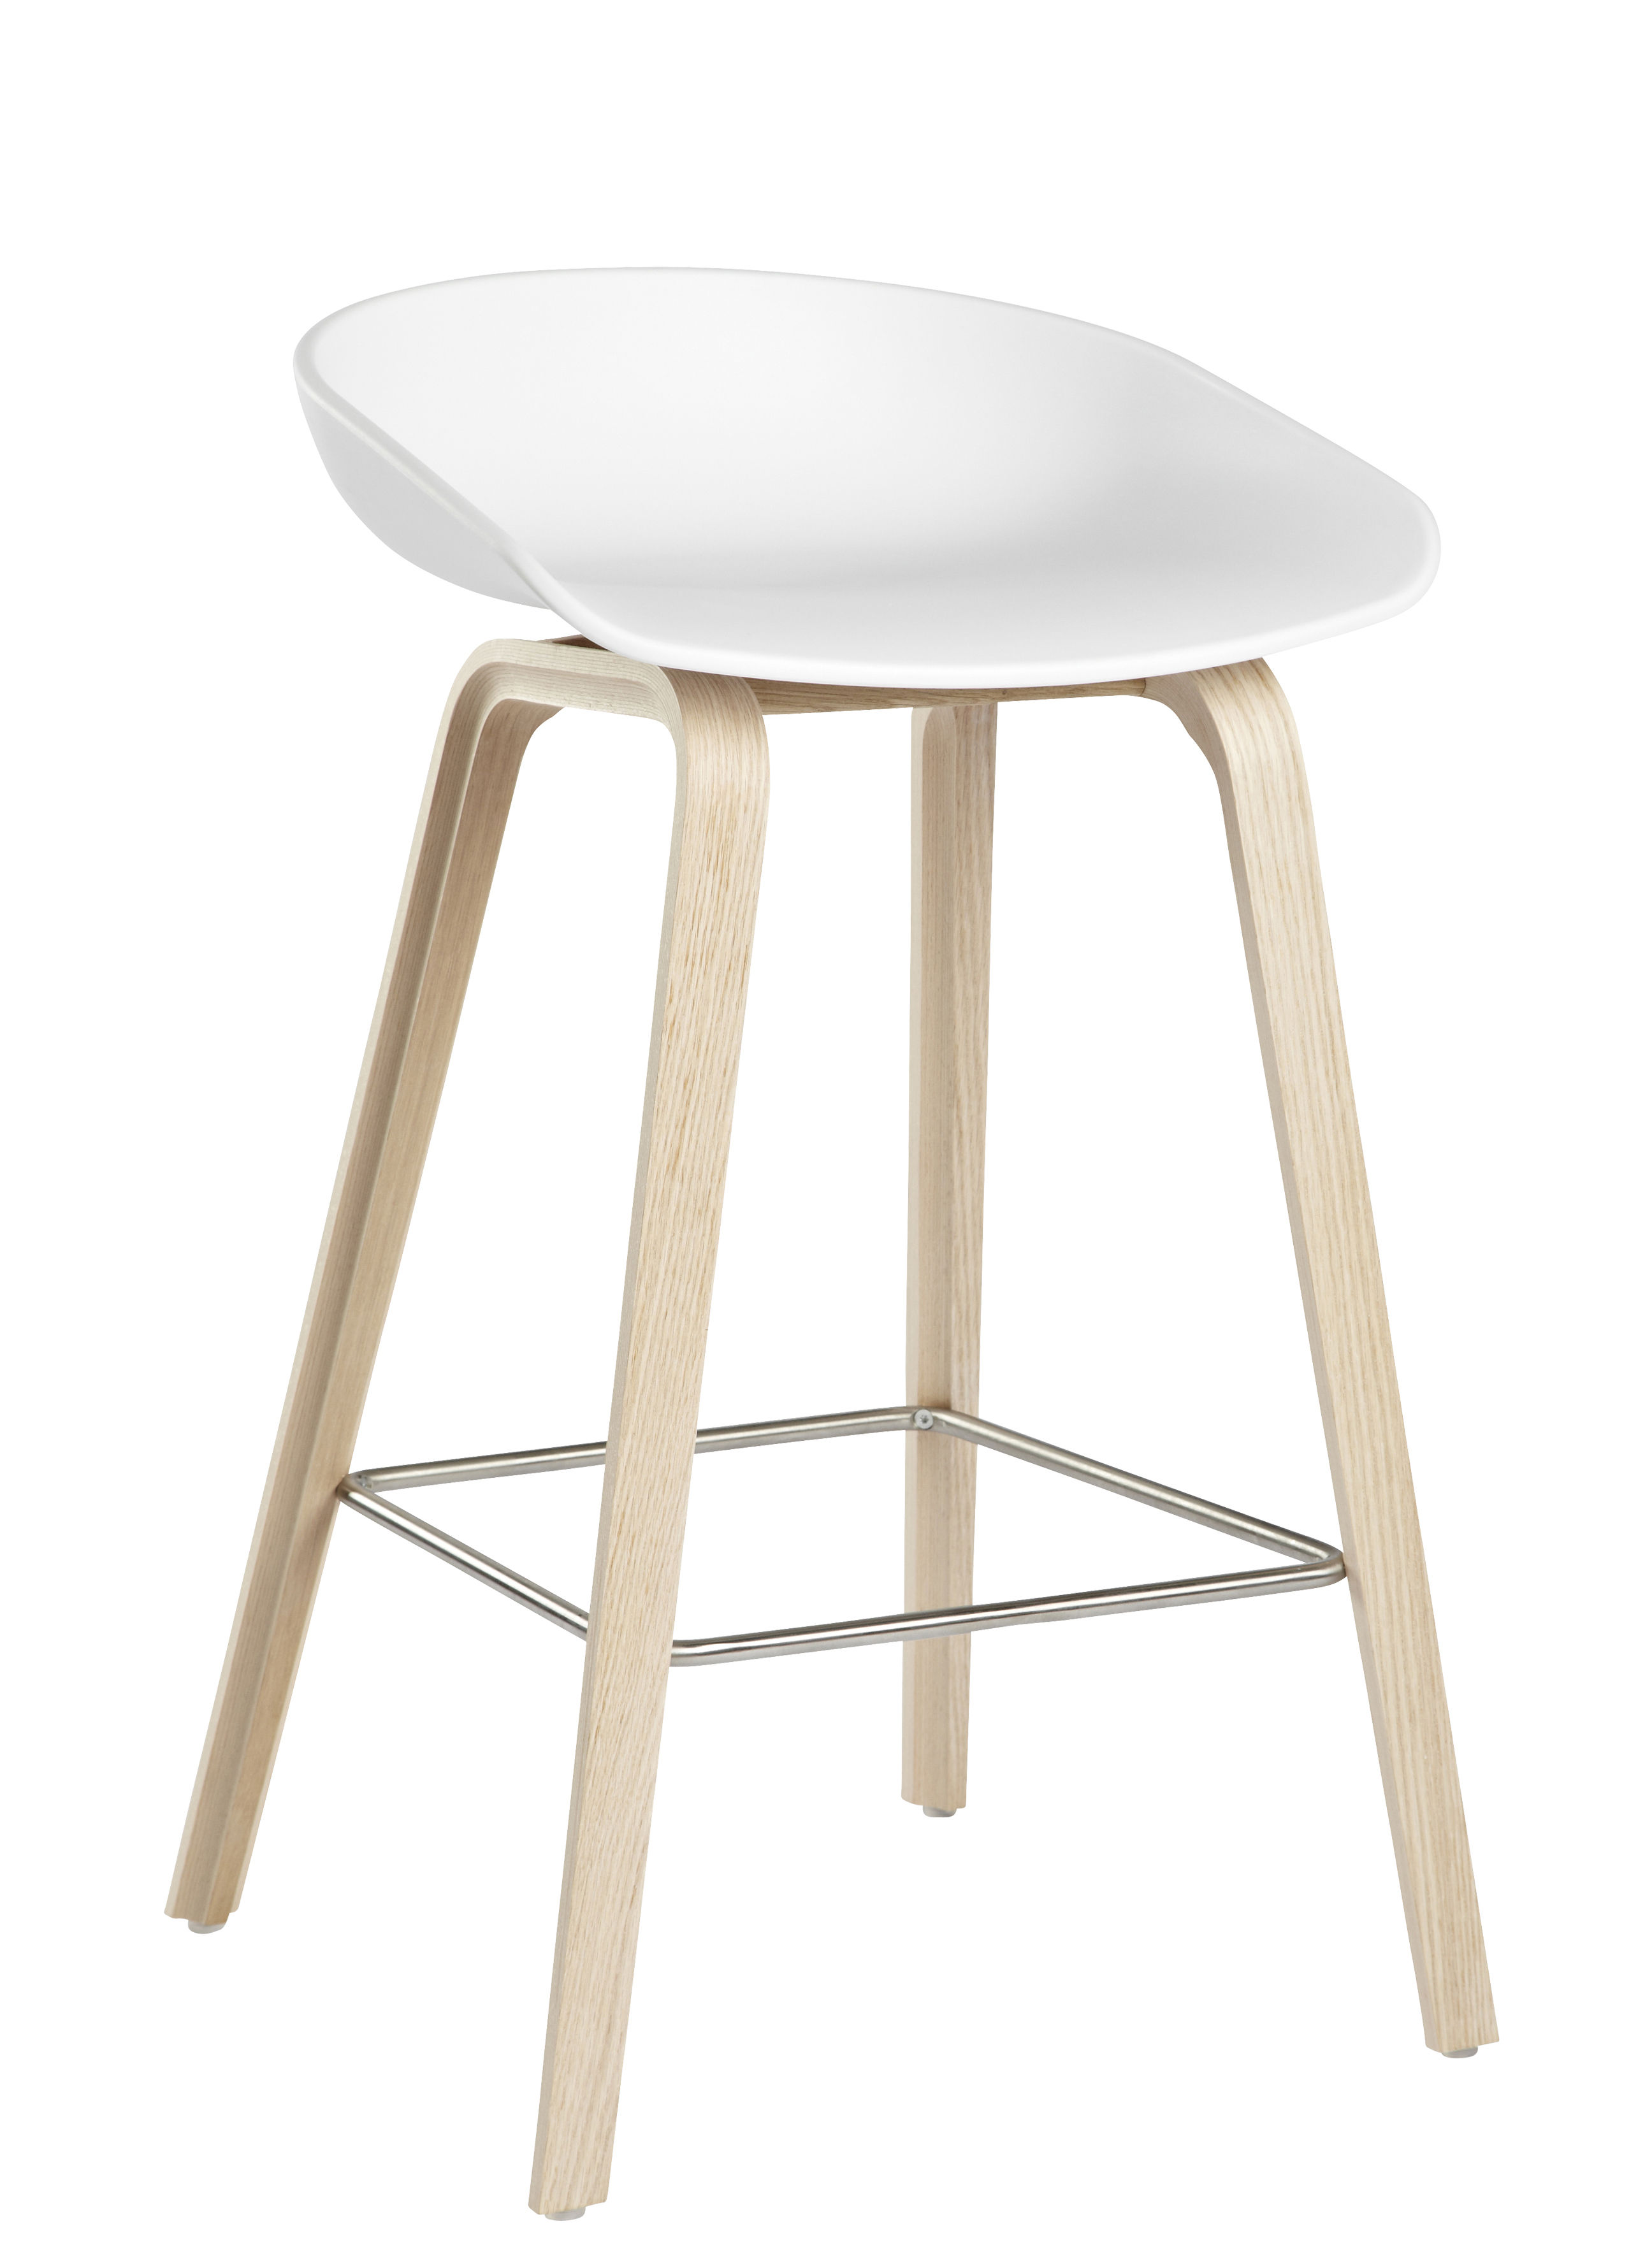 tabouret de bar about a stool aas 32 hay blanc bois. Black Bedroom Furniture Sets. Home Design Ideas